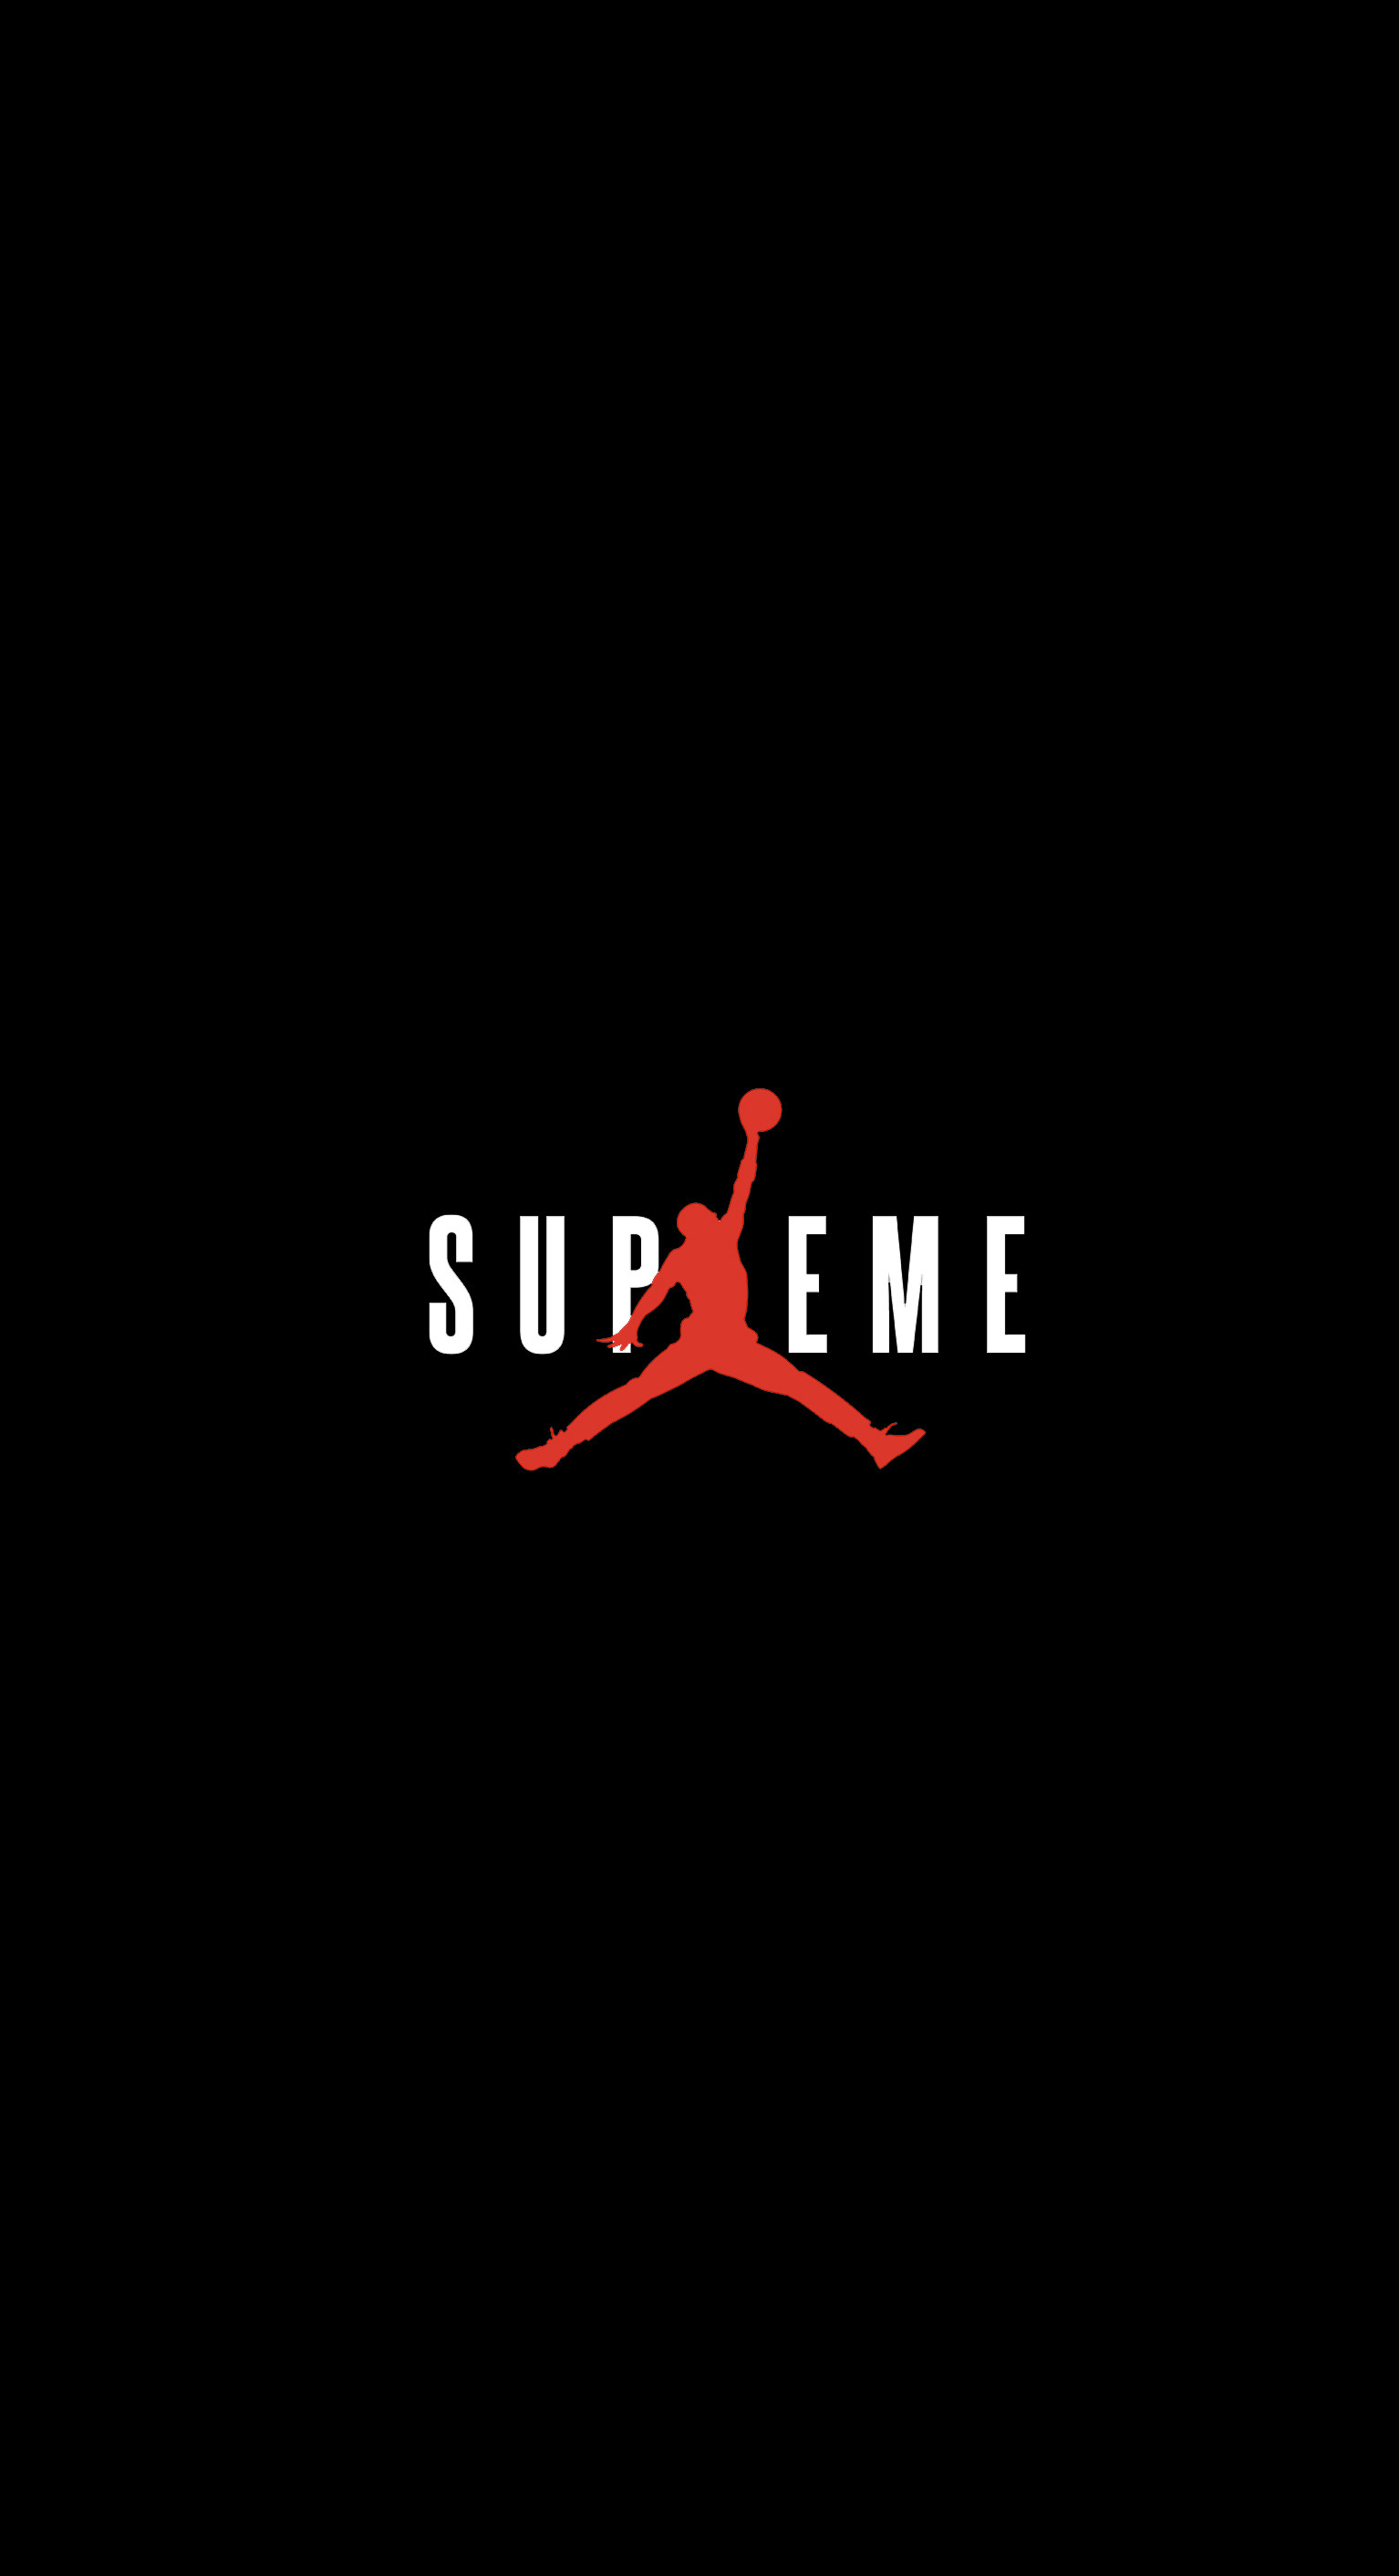 Supreme wallpapers for ipad